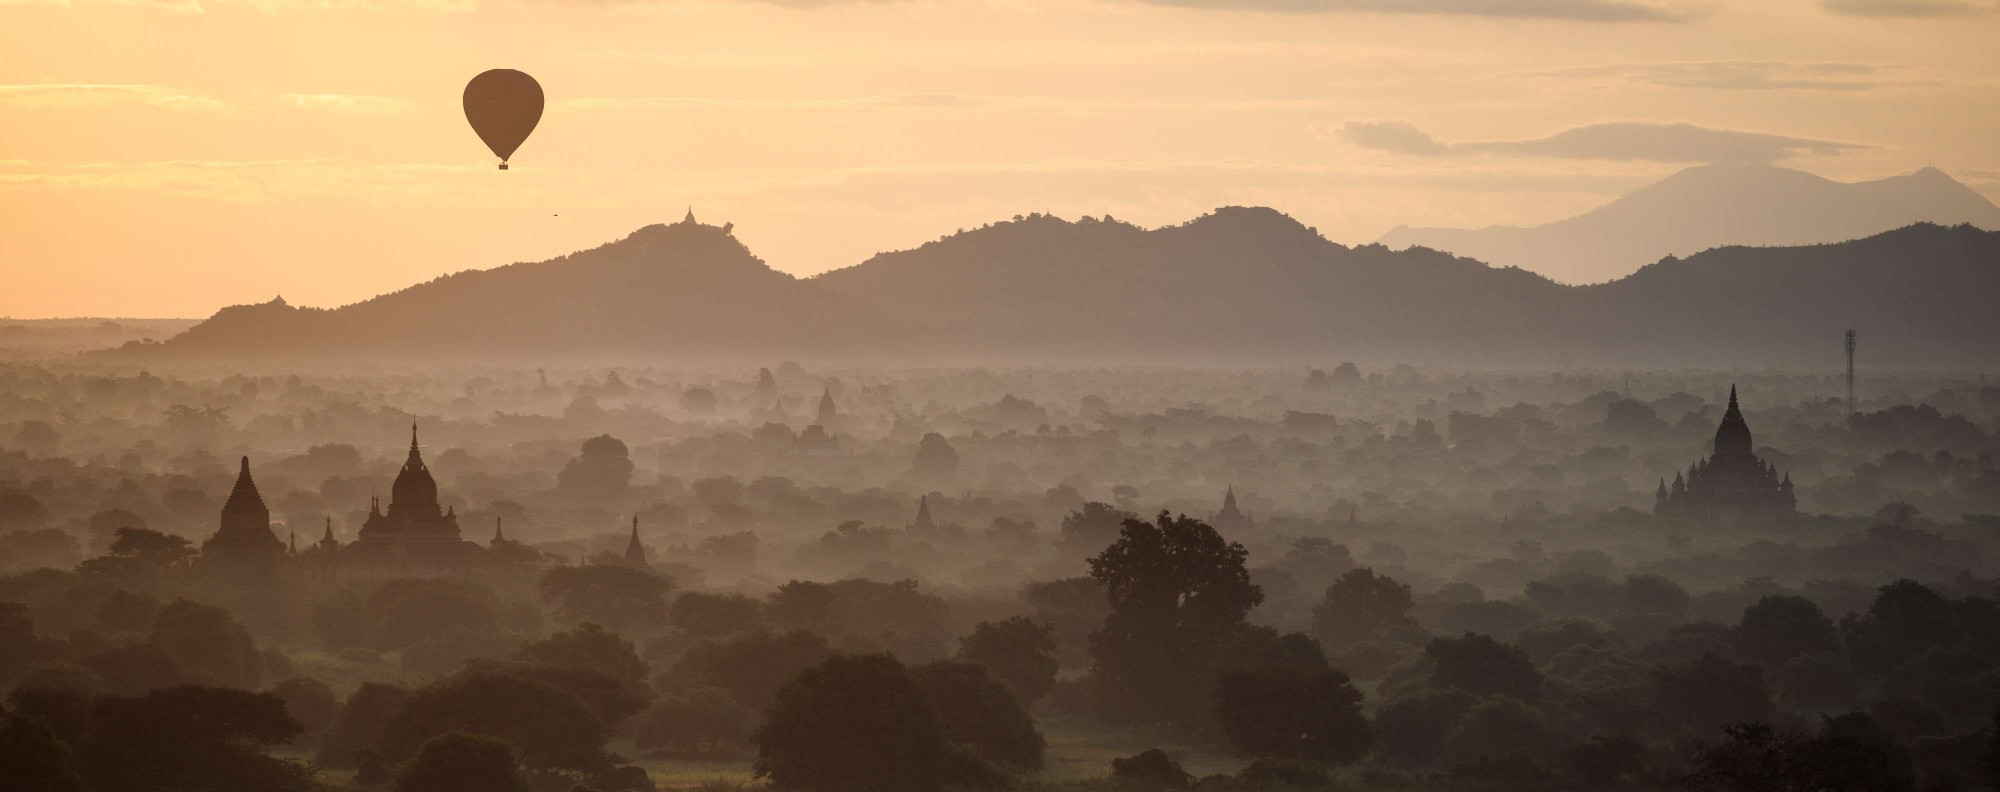 Bagan is still an impressive site, especially from a hot air balloon.